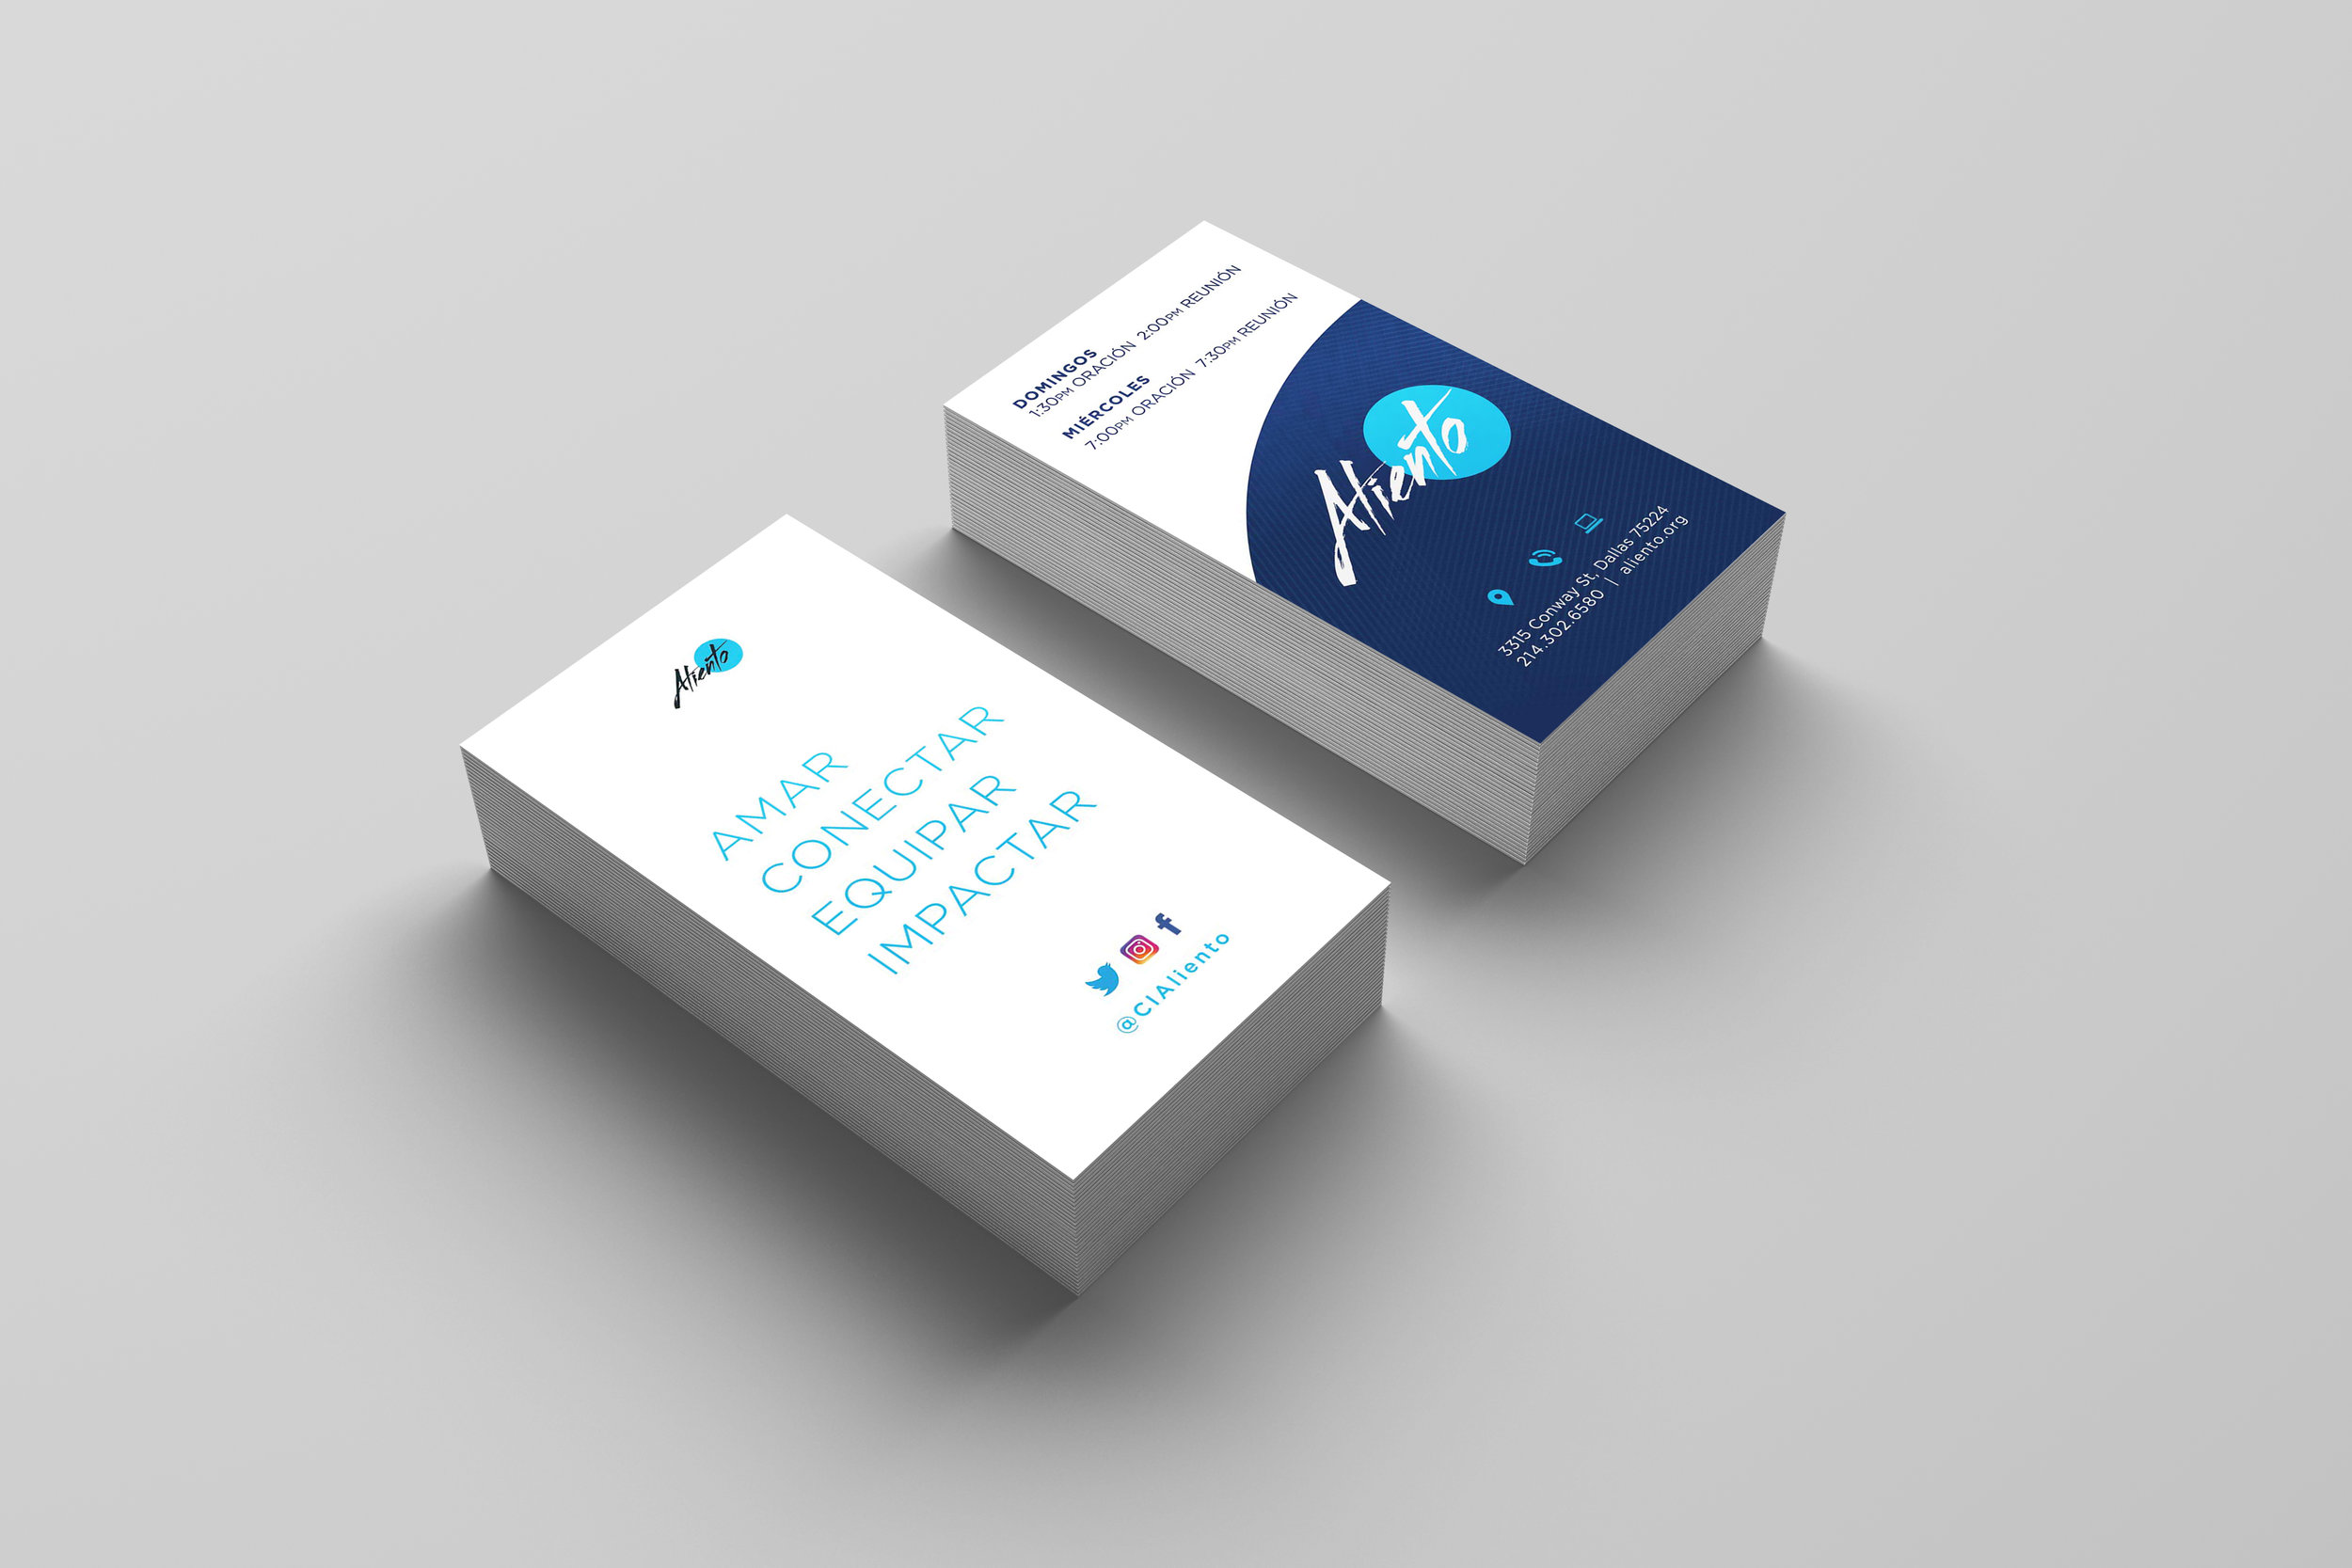 CIAliento business card mockup_2.jpg